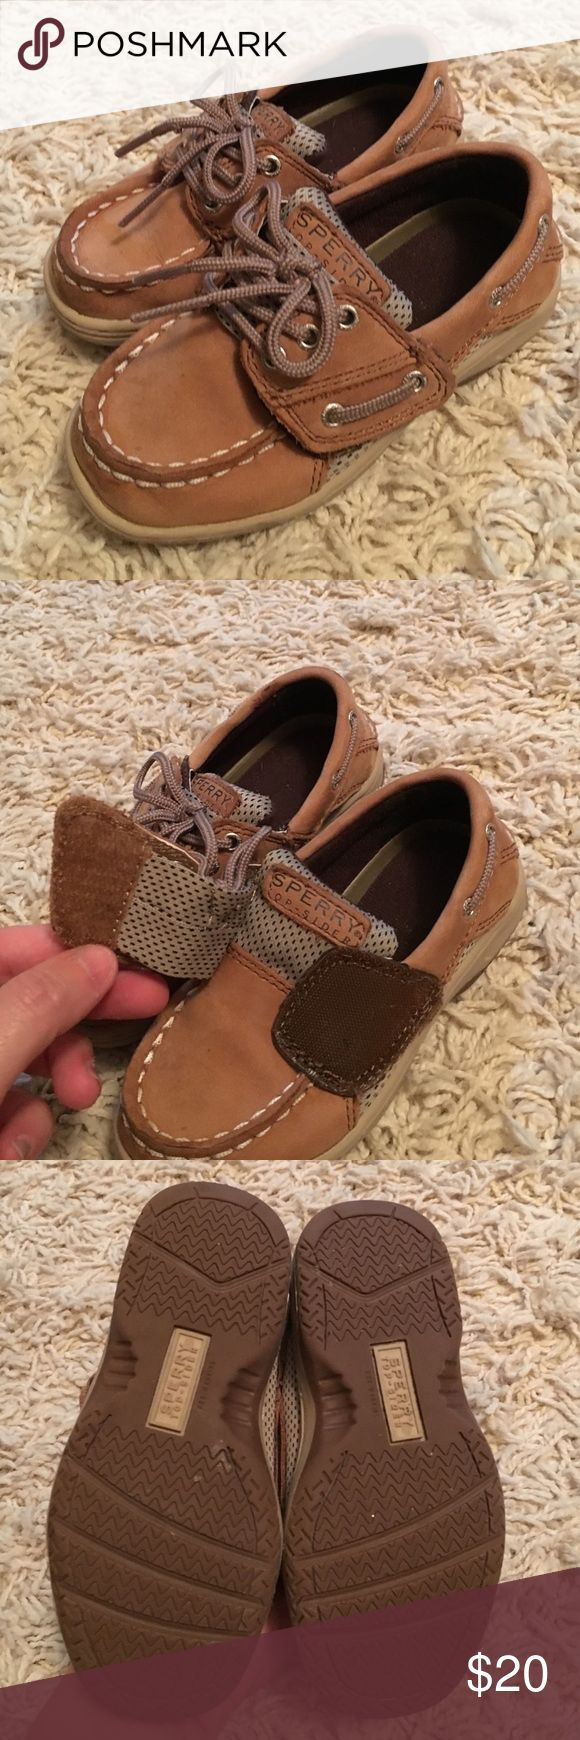 Sperry Top Sider- Size 8 Velcro tie boat shoes Sperry Top Sider- Great condition! Size 8 Top Sider boat shoes.  Easy Velcro faux tie. Sperry Top-Sider Shoes